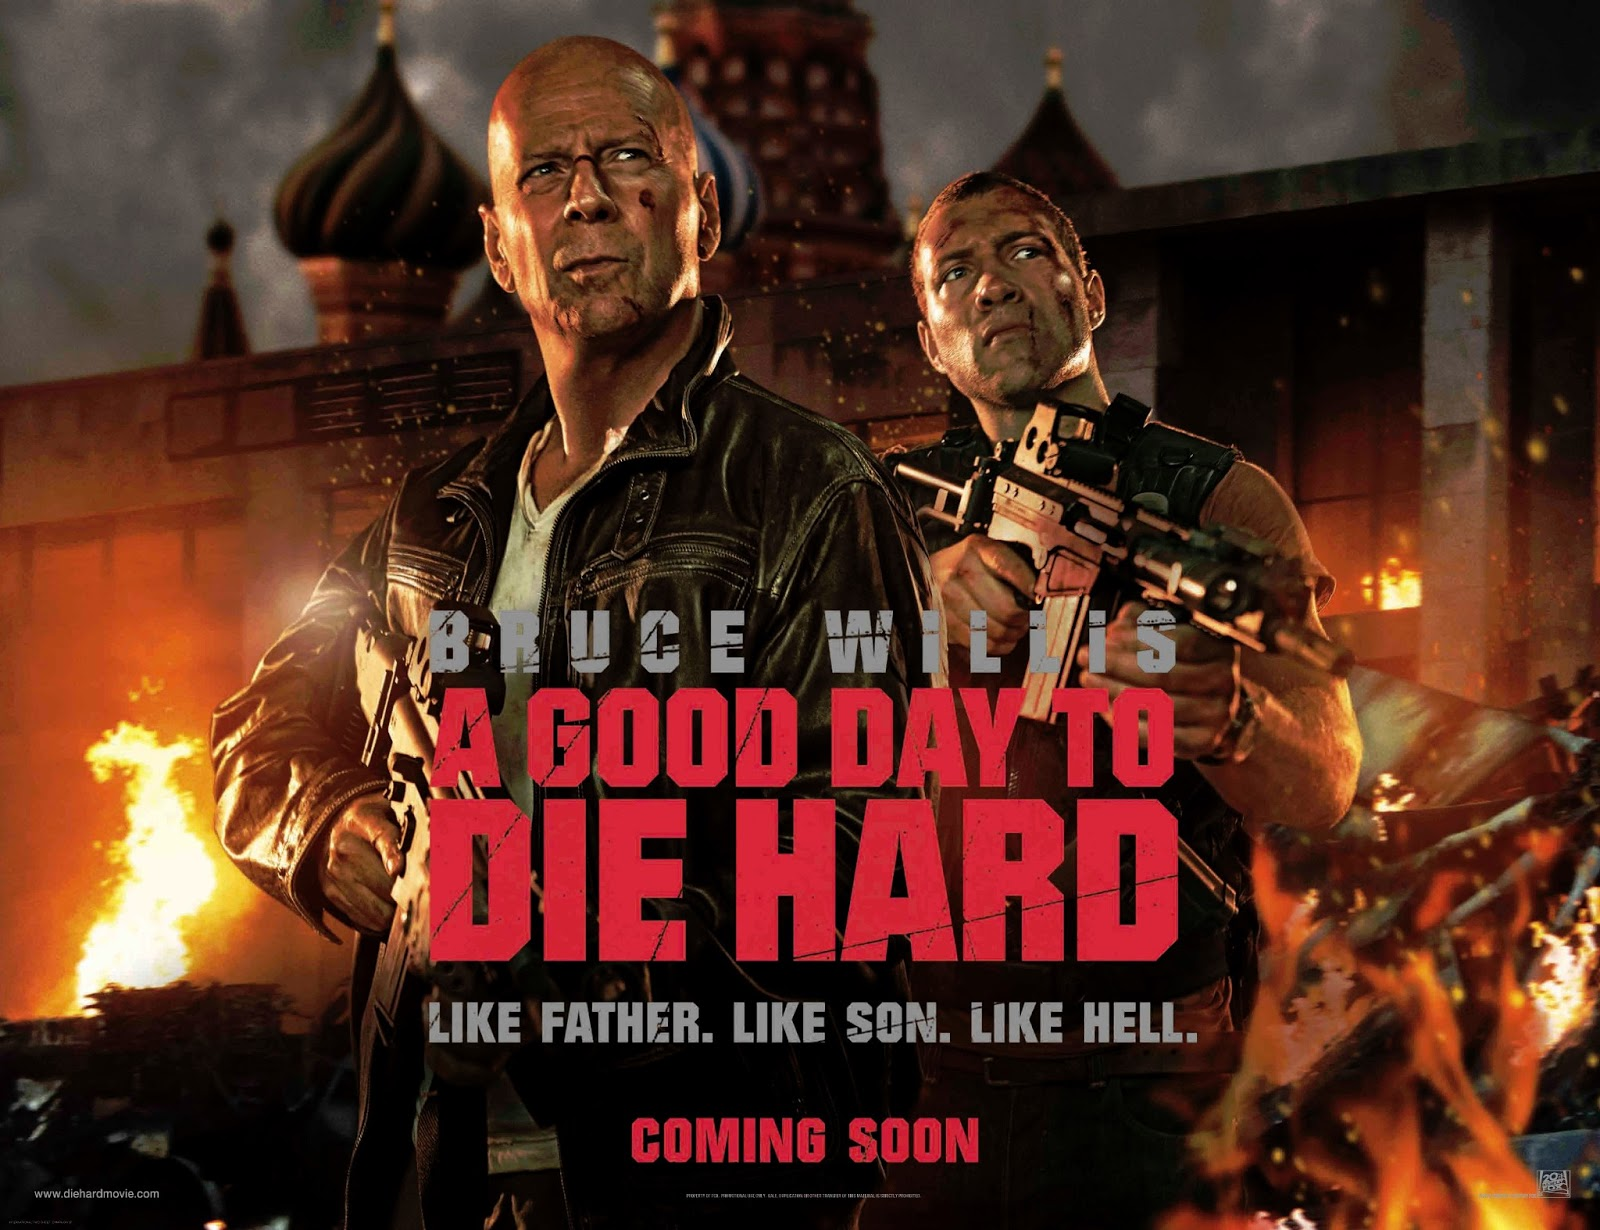 ... die-hard-2013-download-movie-online-watch-a-good-day-to-die-hard-2013